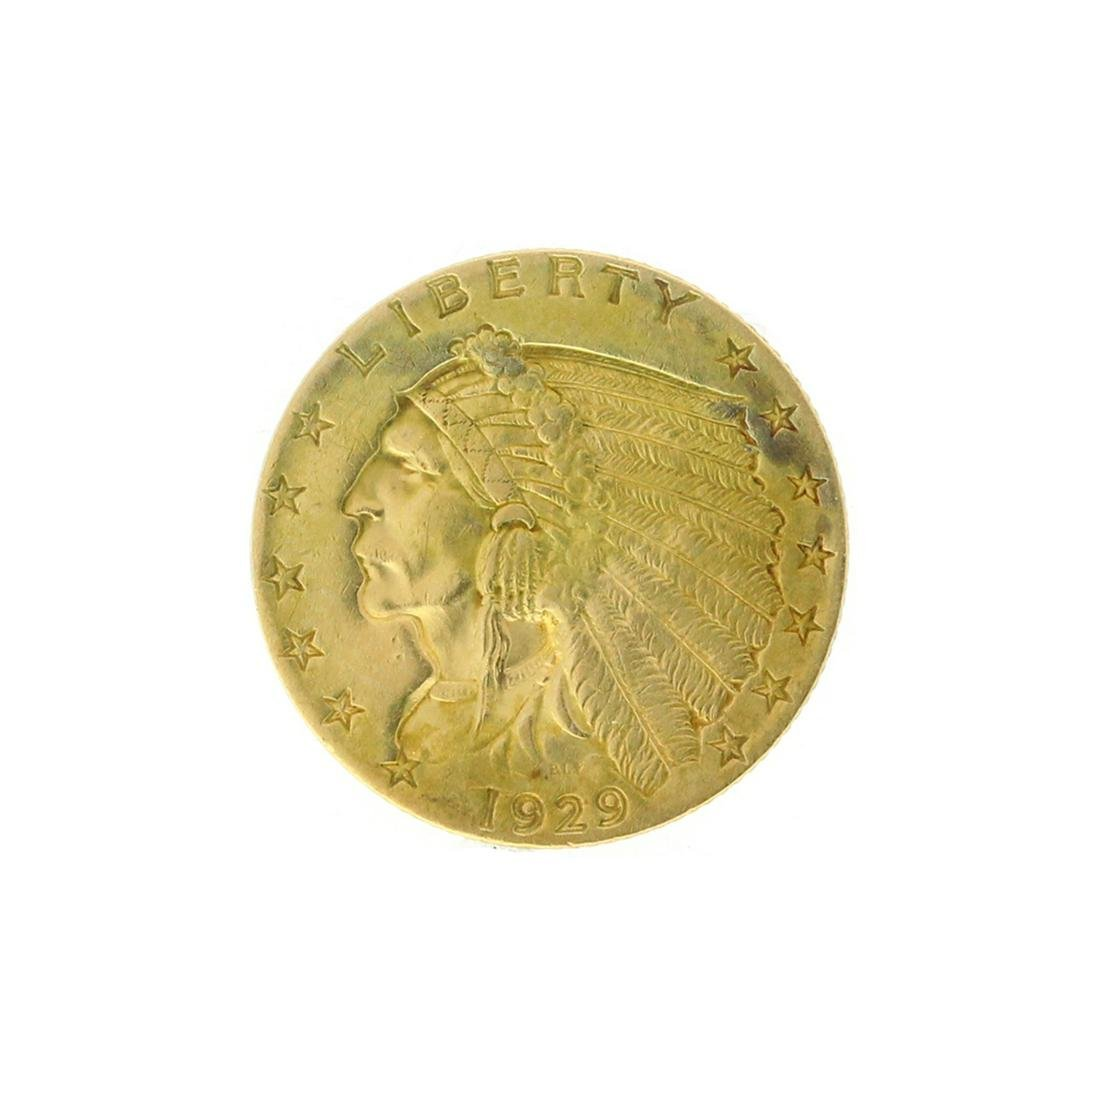 Rare 1929 $2.50 Indian Head Gold Coin Great Investment